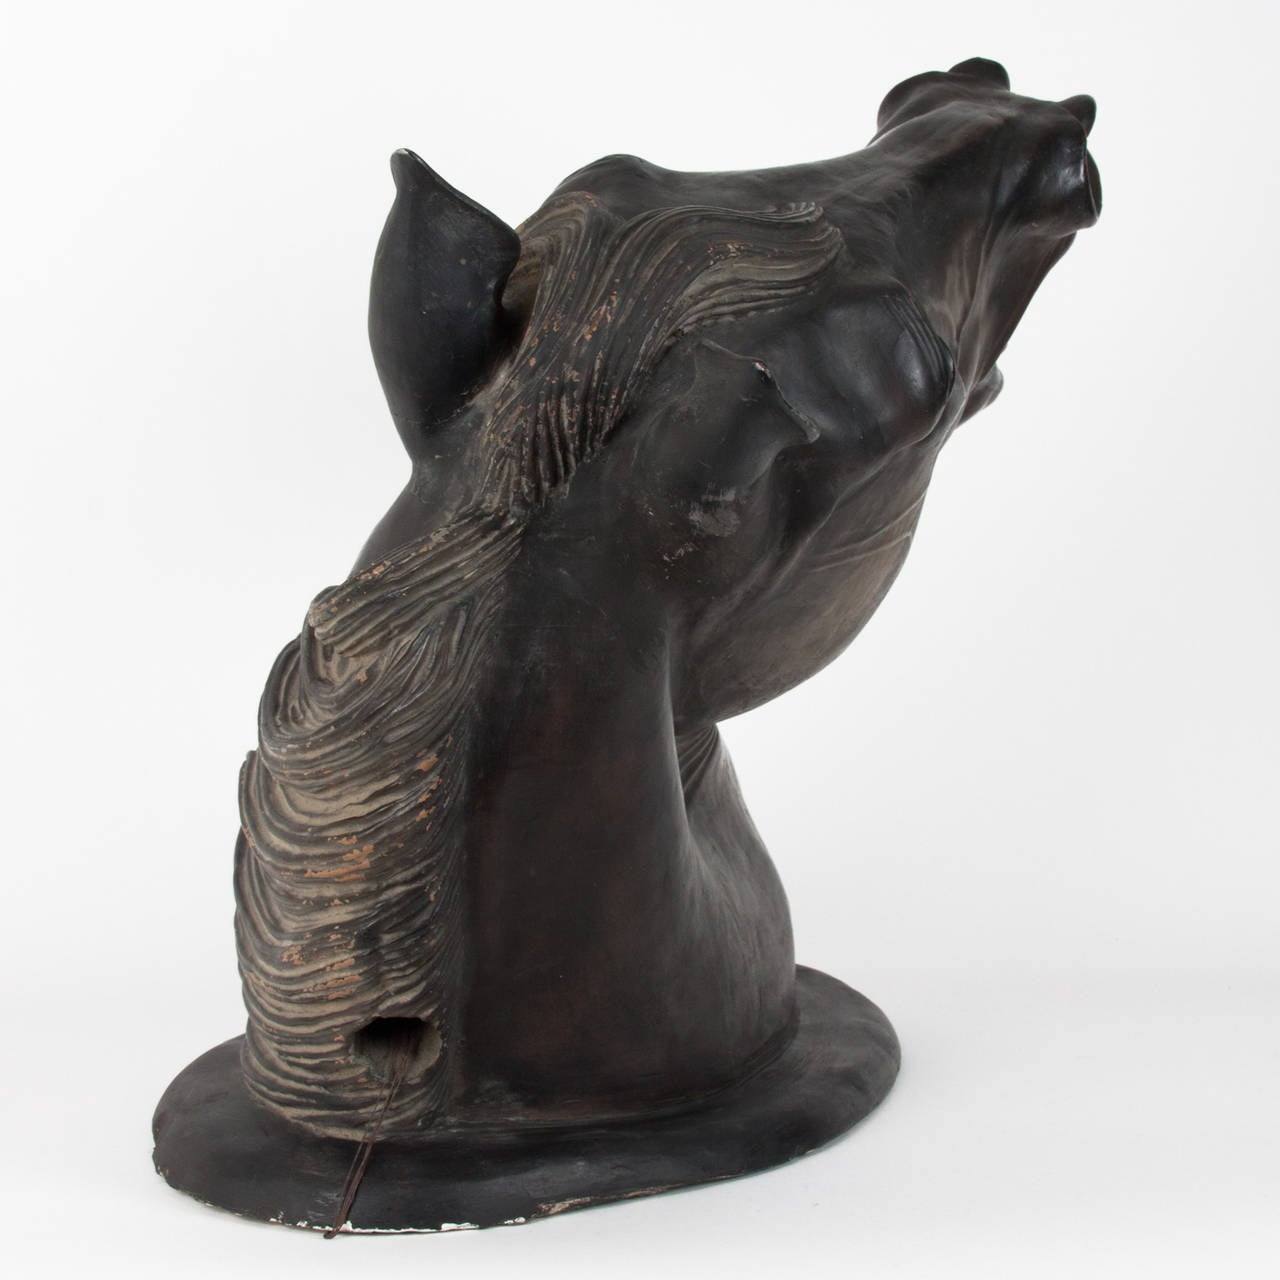 19th Century Patinated Terracotta Horse Head For Sale 1